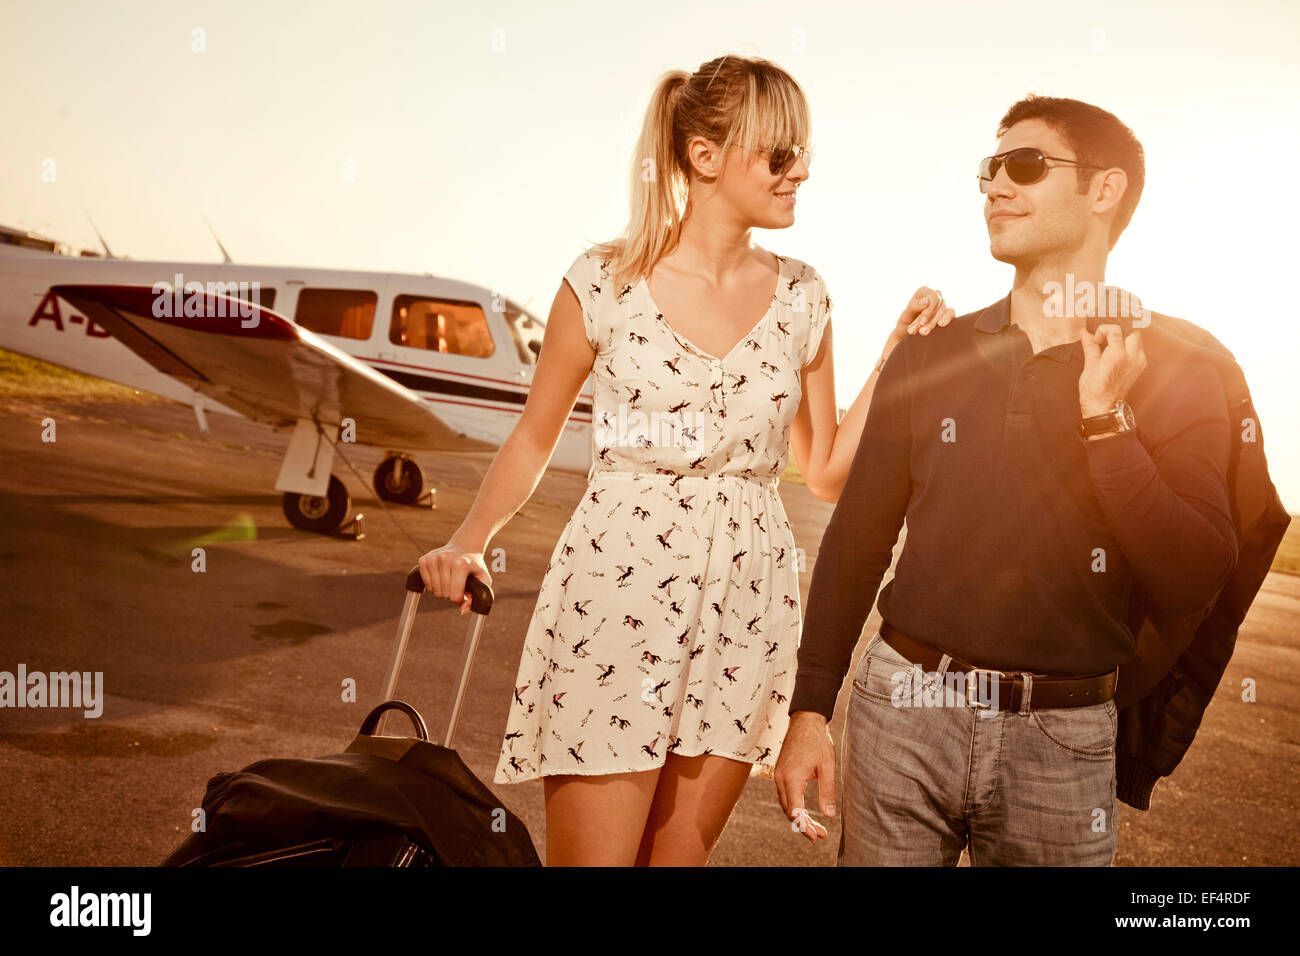 Couple with luggage in front of private airplane - Stock Image